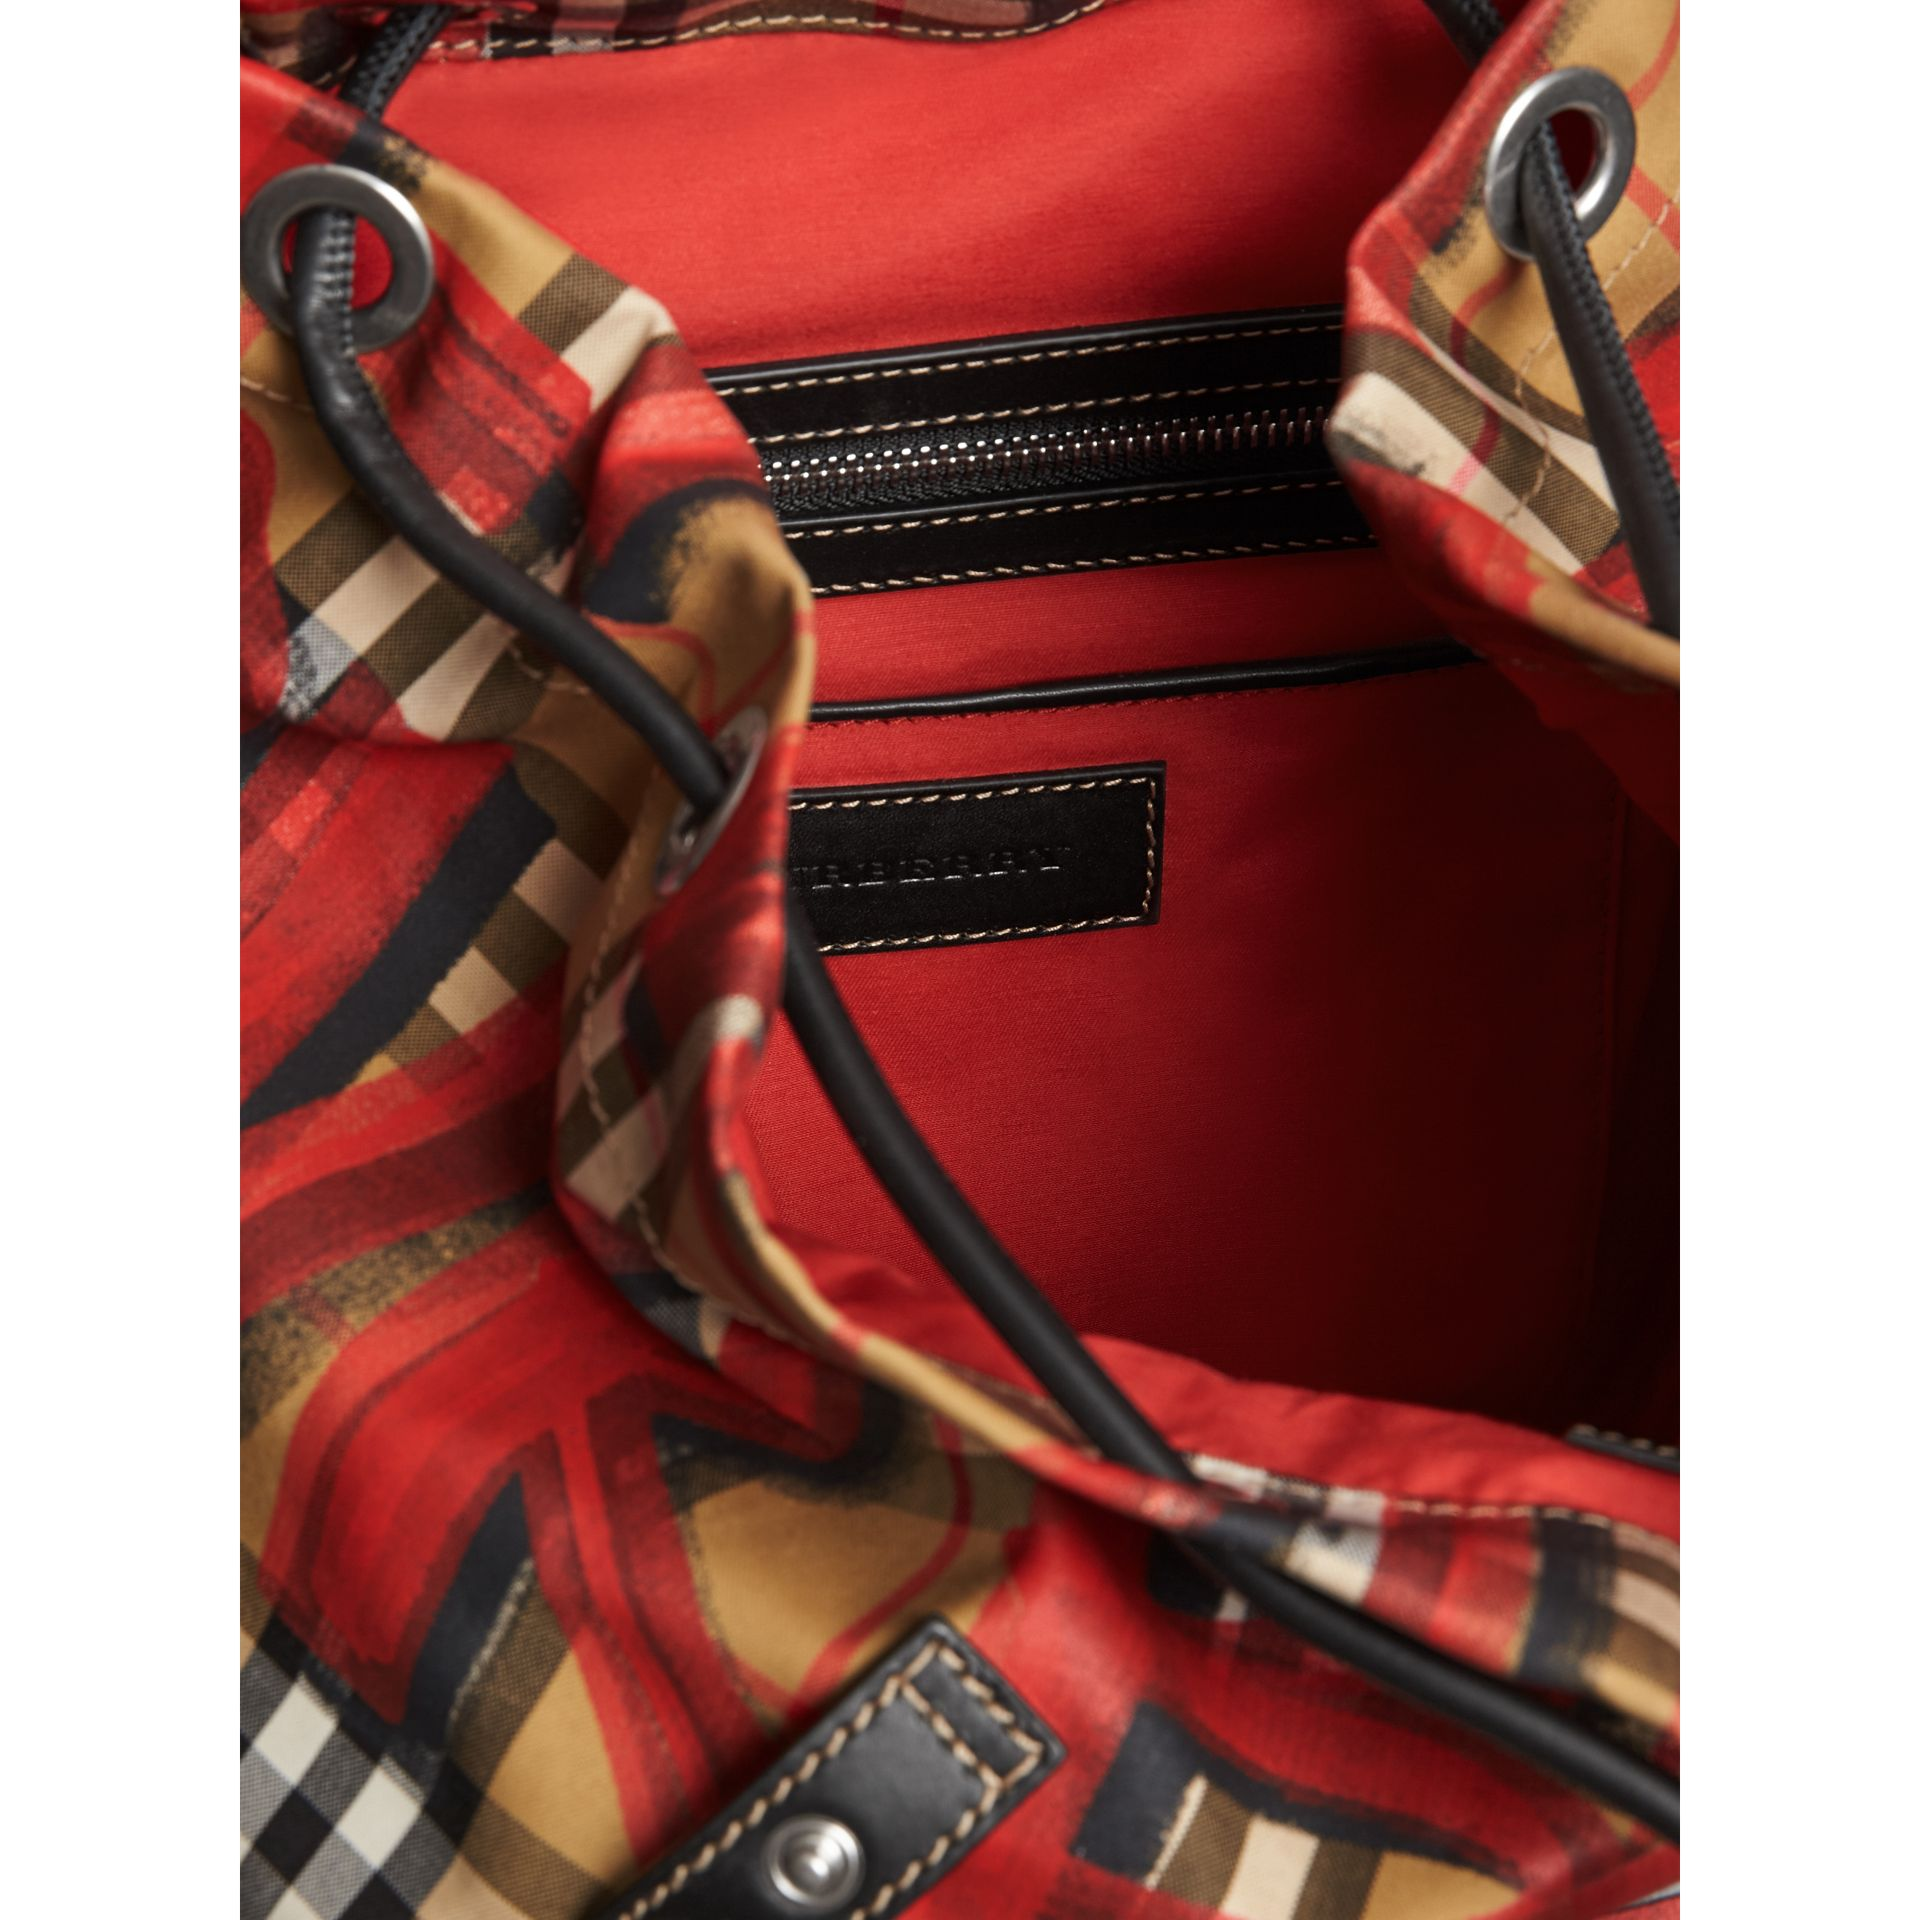 Sac The Rucksack moyen à motif Vintage check et graffiti (Jaune Antique/rouge) - Femme | Burberry - photo de la galerie 5